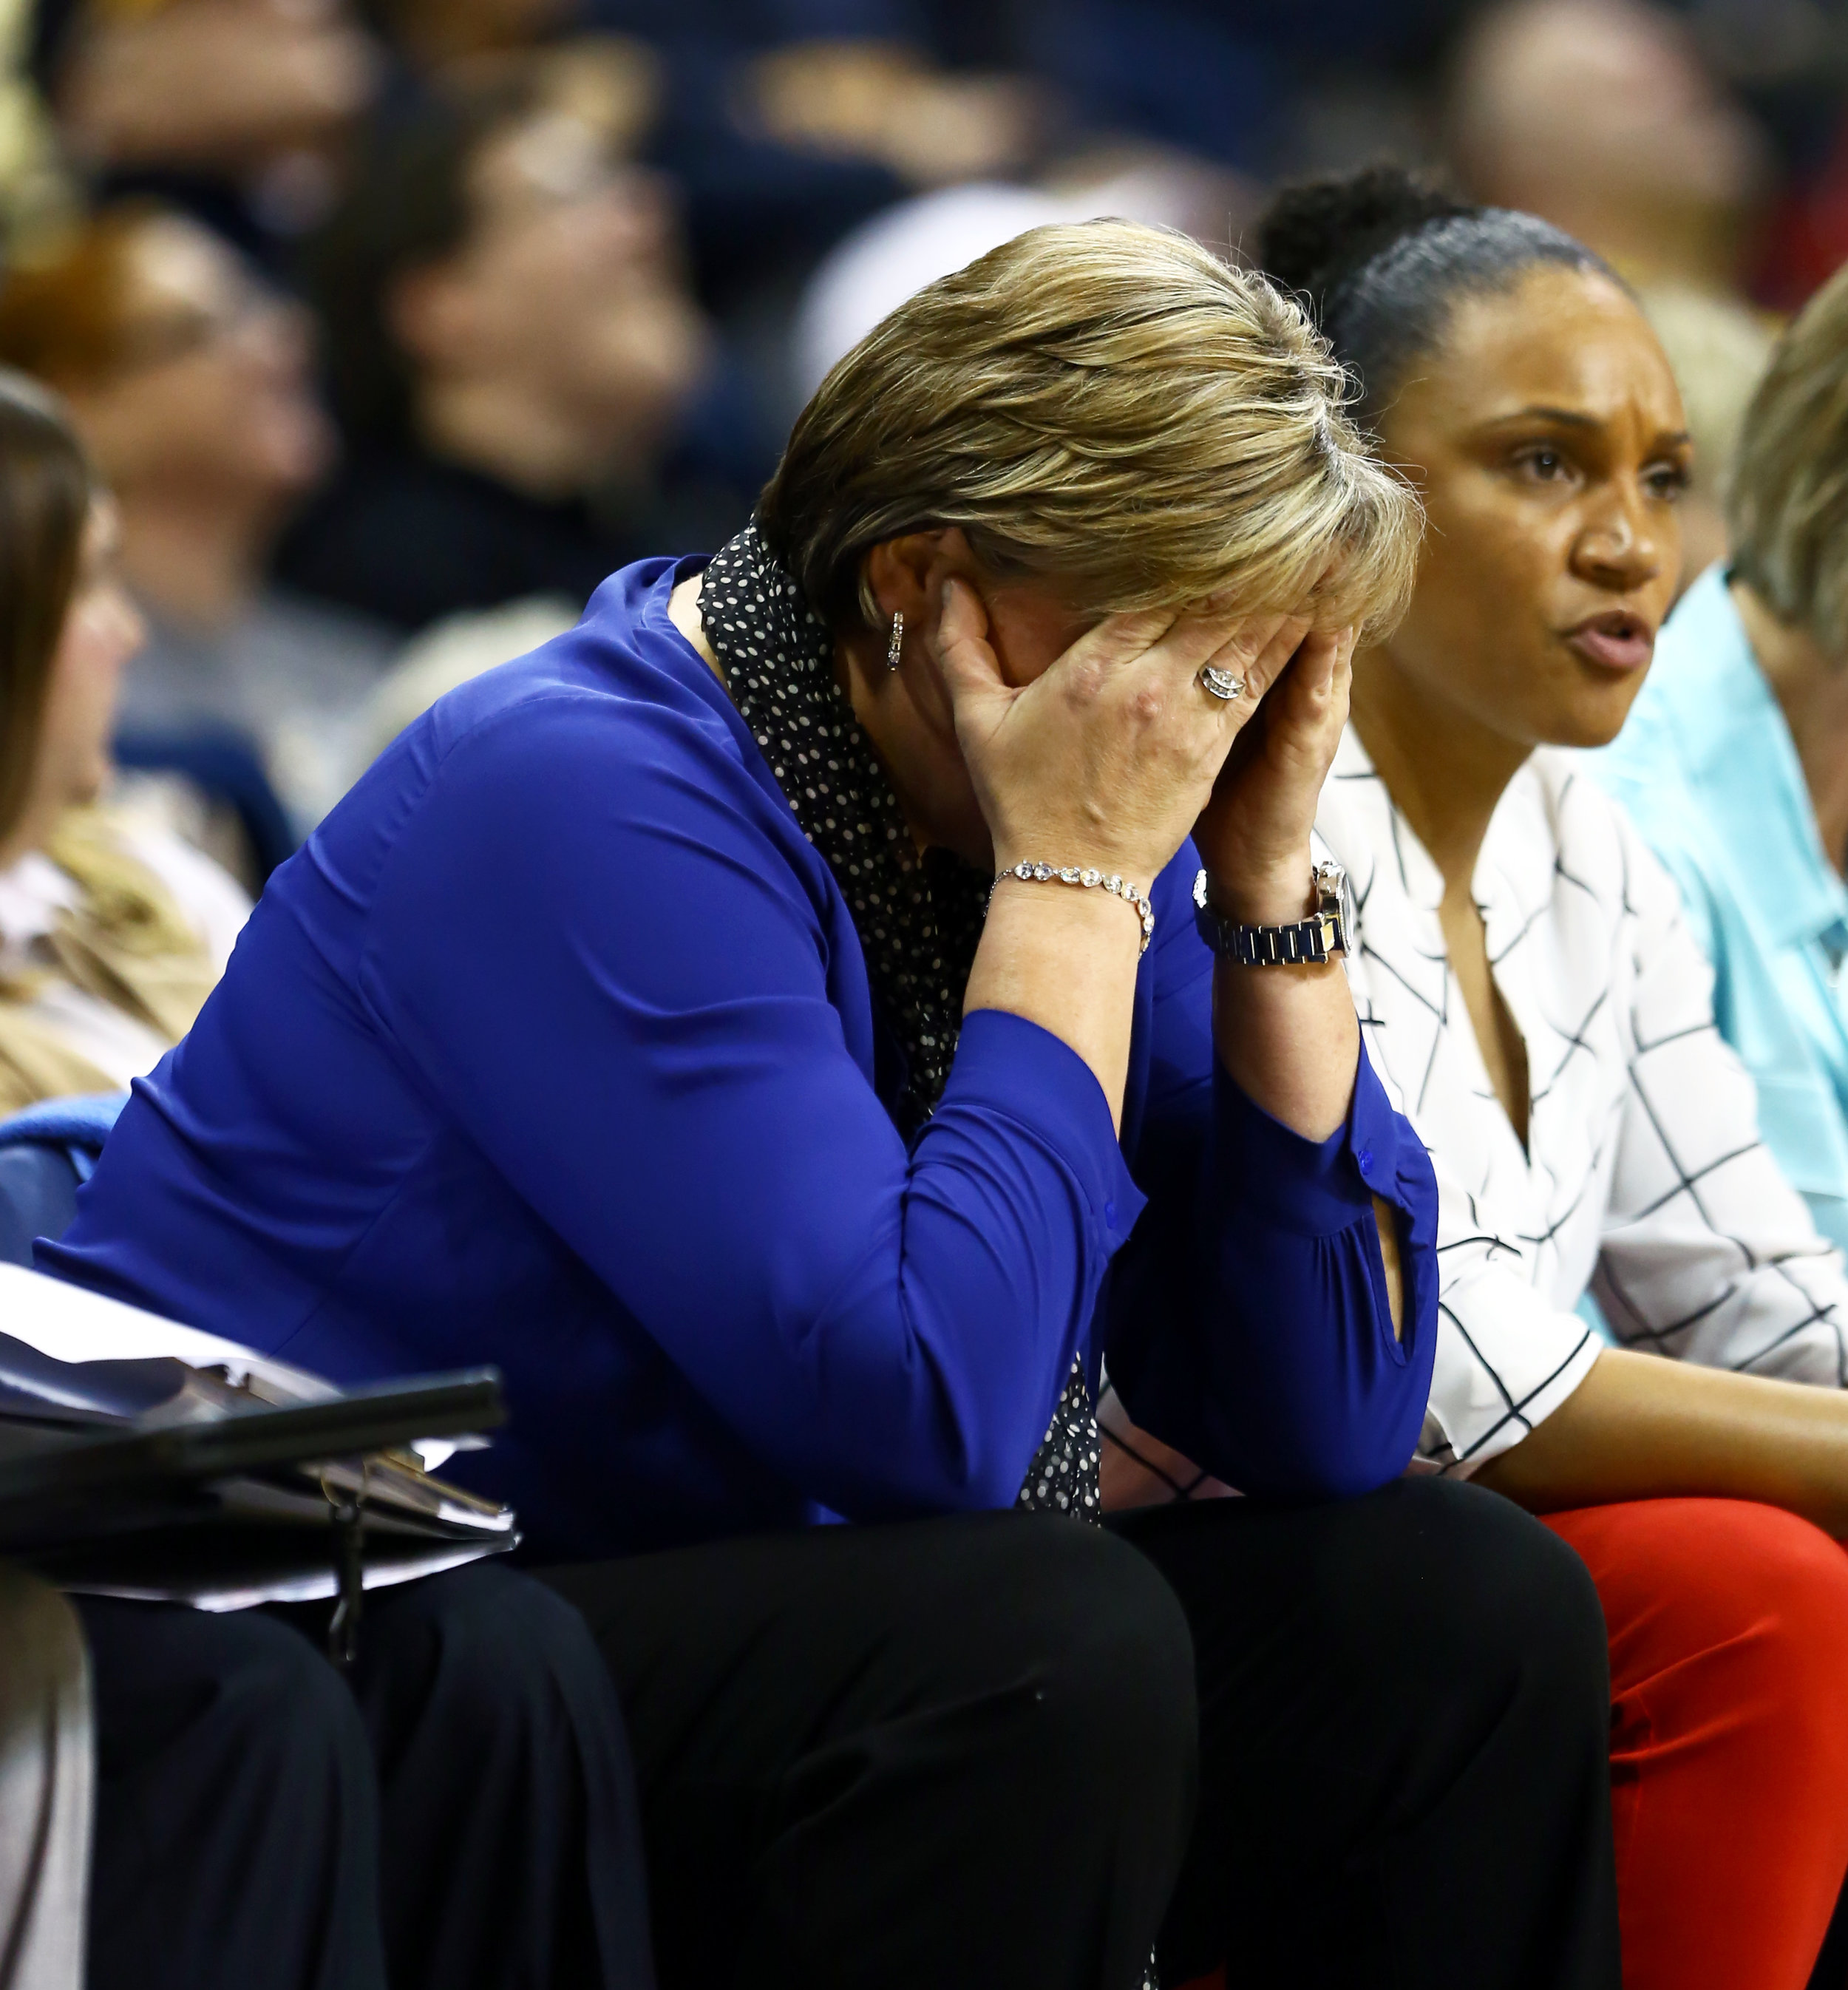 University of Toledo women's basketball head coach Tricia Cullop holds her head in her hands on the bench after a turn over to Notre Dame during the women's basketball game at Savage Arena on the University of Toledo's campus on Sunday, Dec. 18, 2016. Notre Dame won the game 85-68.